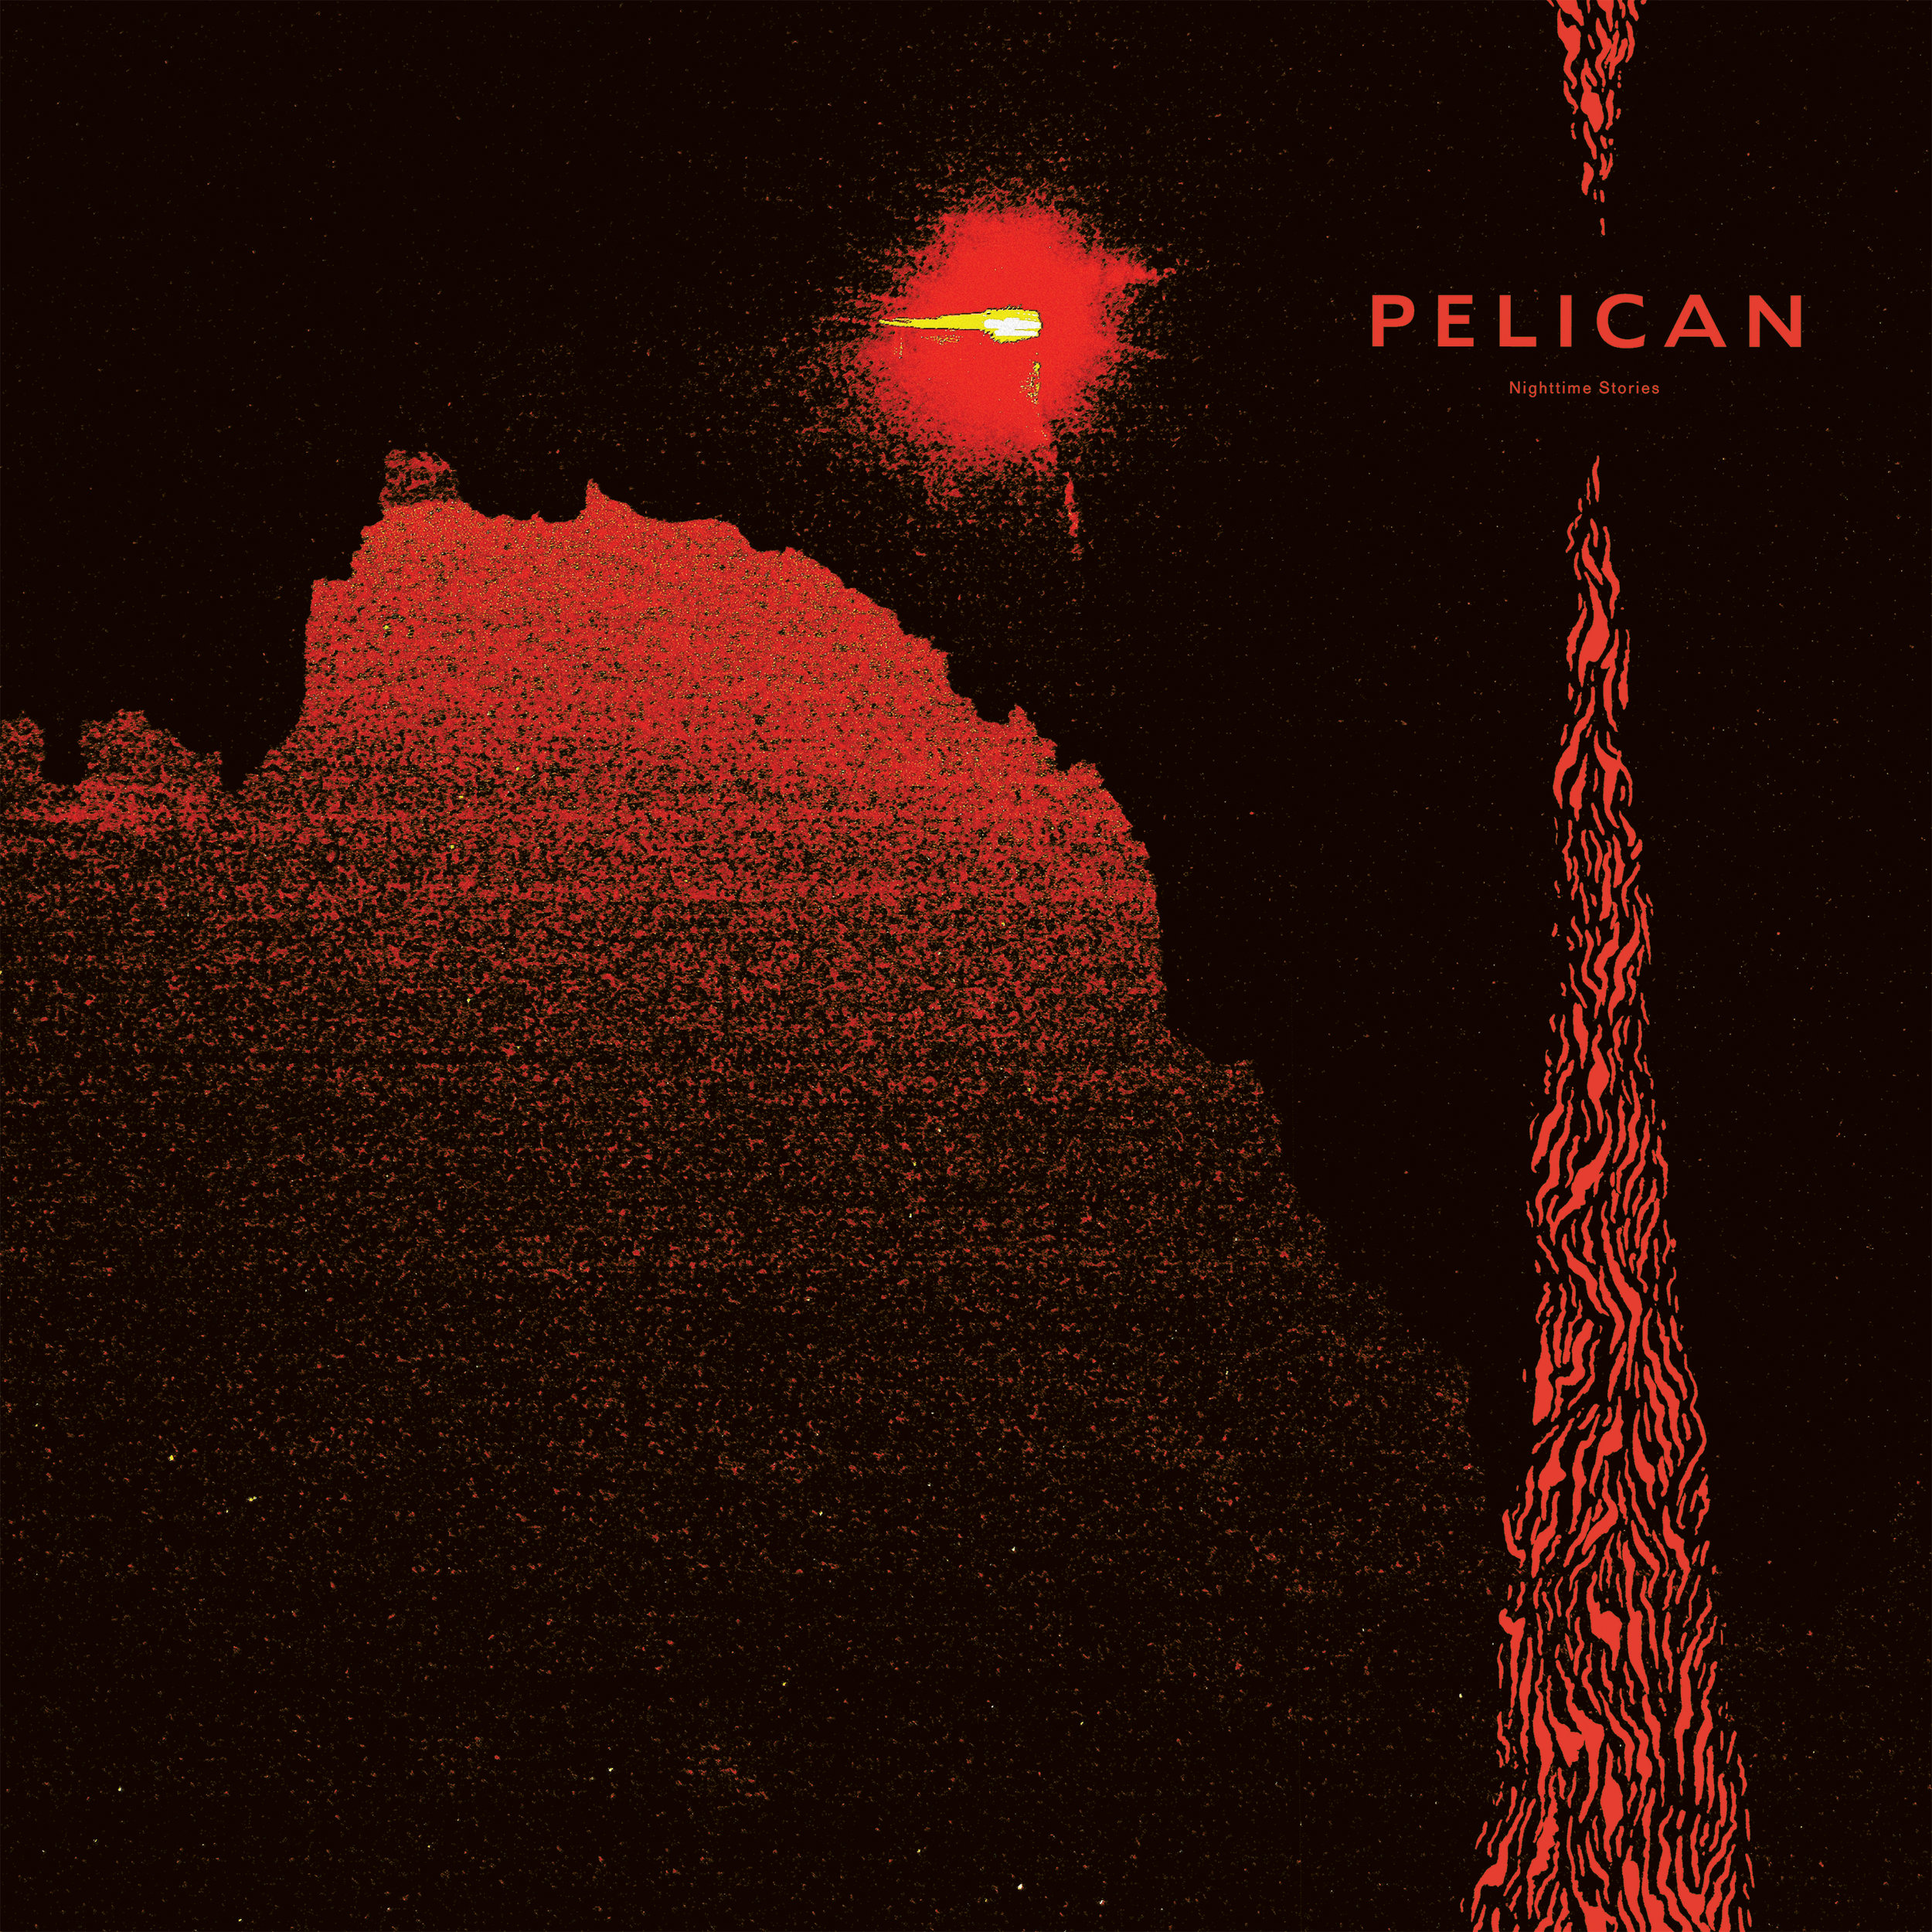 Pelican - Nighttime Stories  Devices Used:  Avalanche Run  /  The Depths  /  Organizer  /  Dispatch Master  /  Tone Job